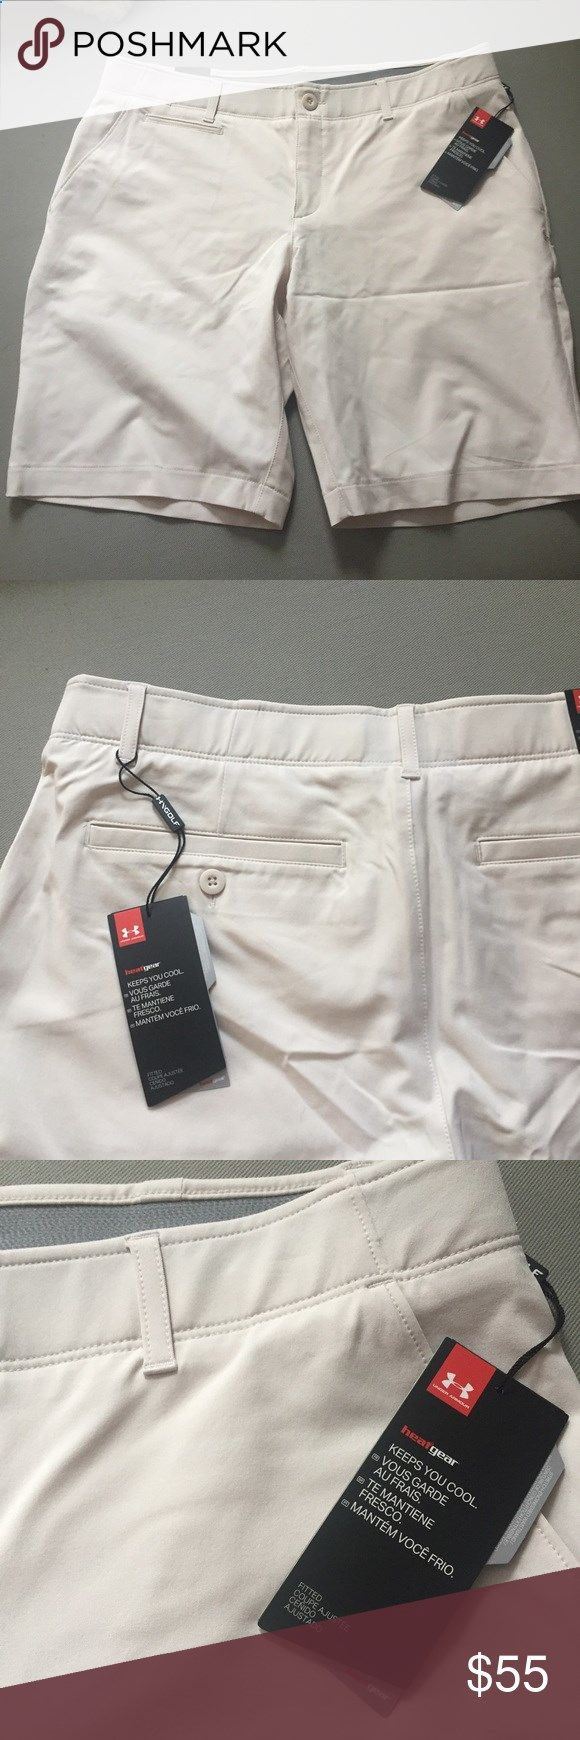 Under Armour Shorts Great golf shorts that can be worn all summer for any occasion. HeatGear fabric that keeps you cool and dry. UPF 30 sun protection. Under Armour Shorts